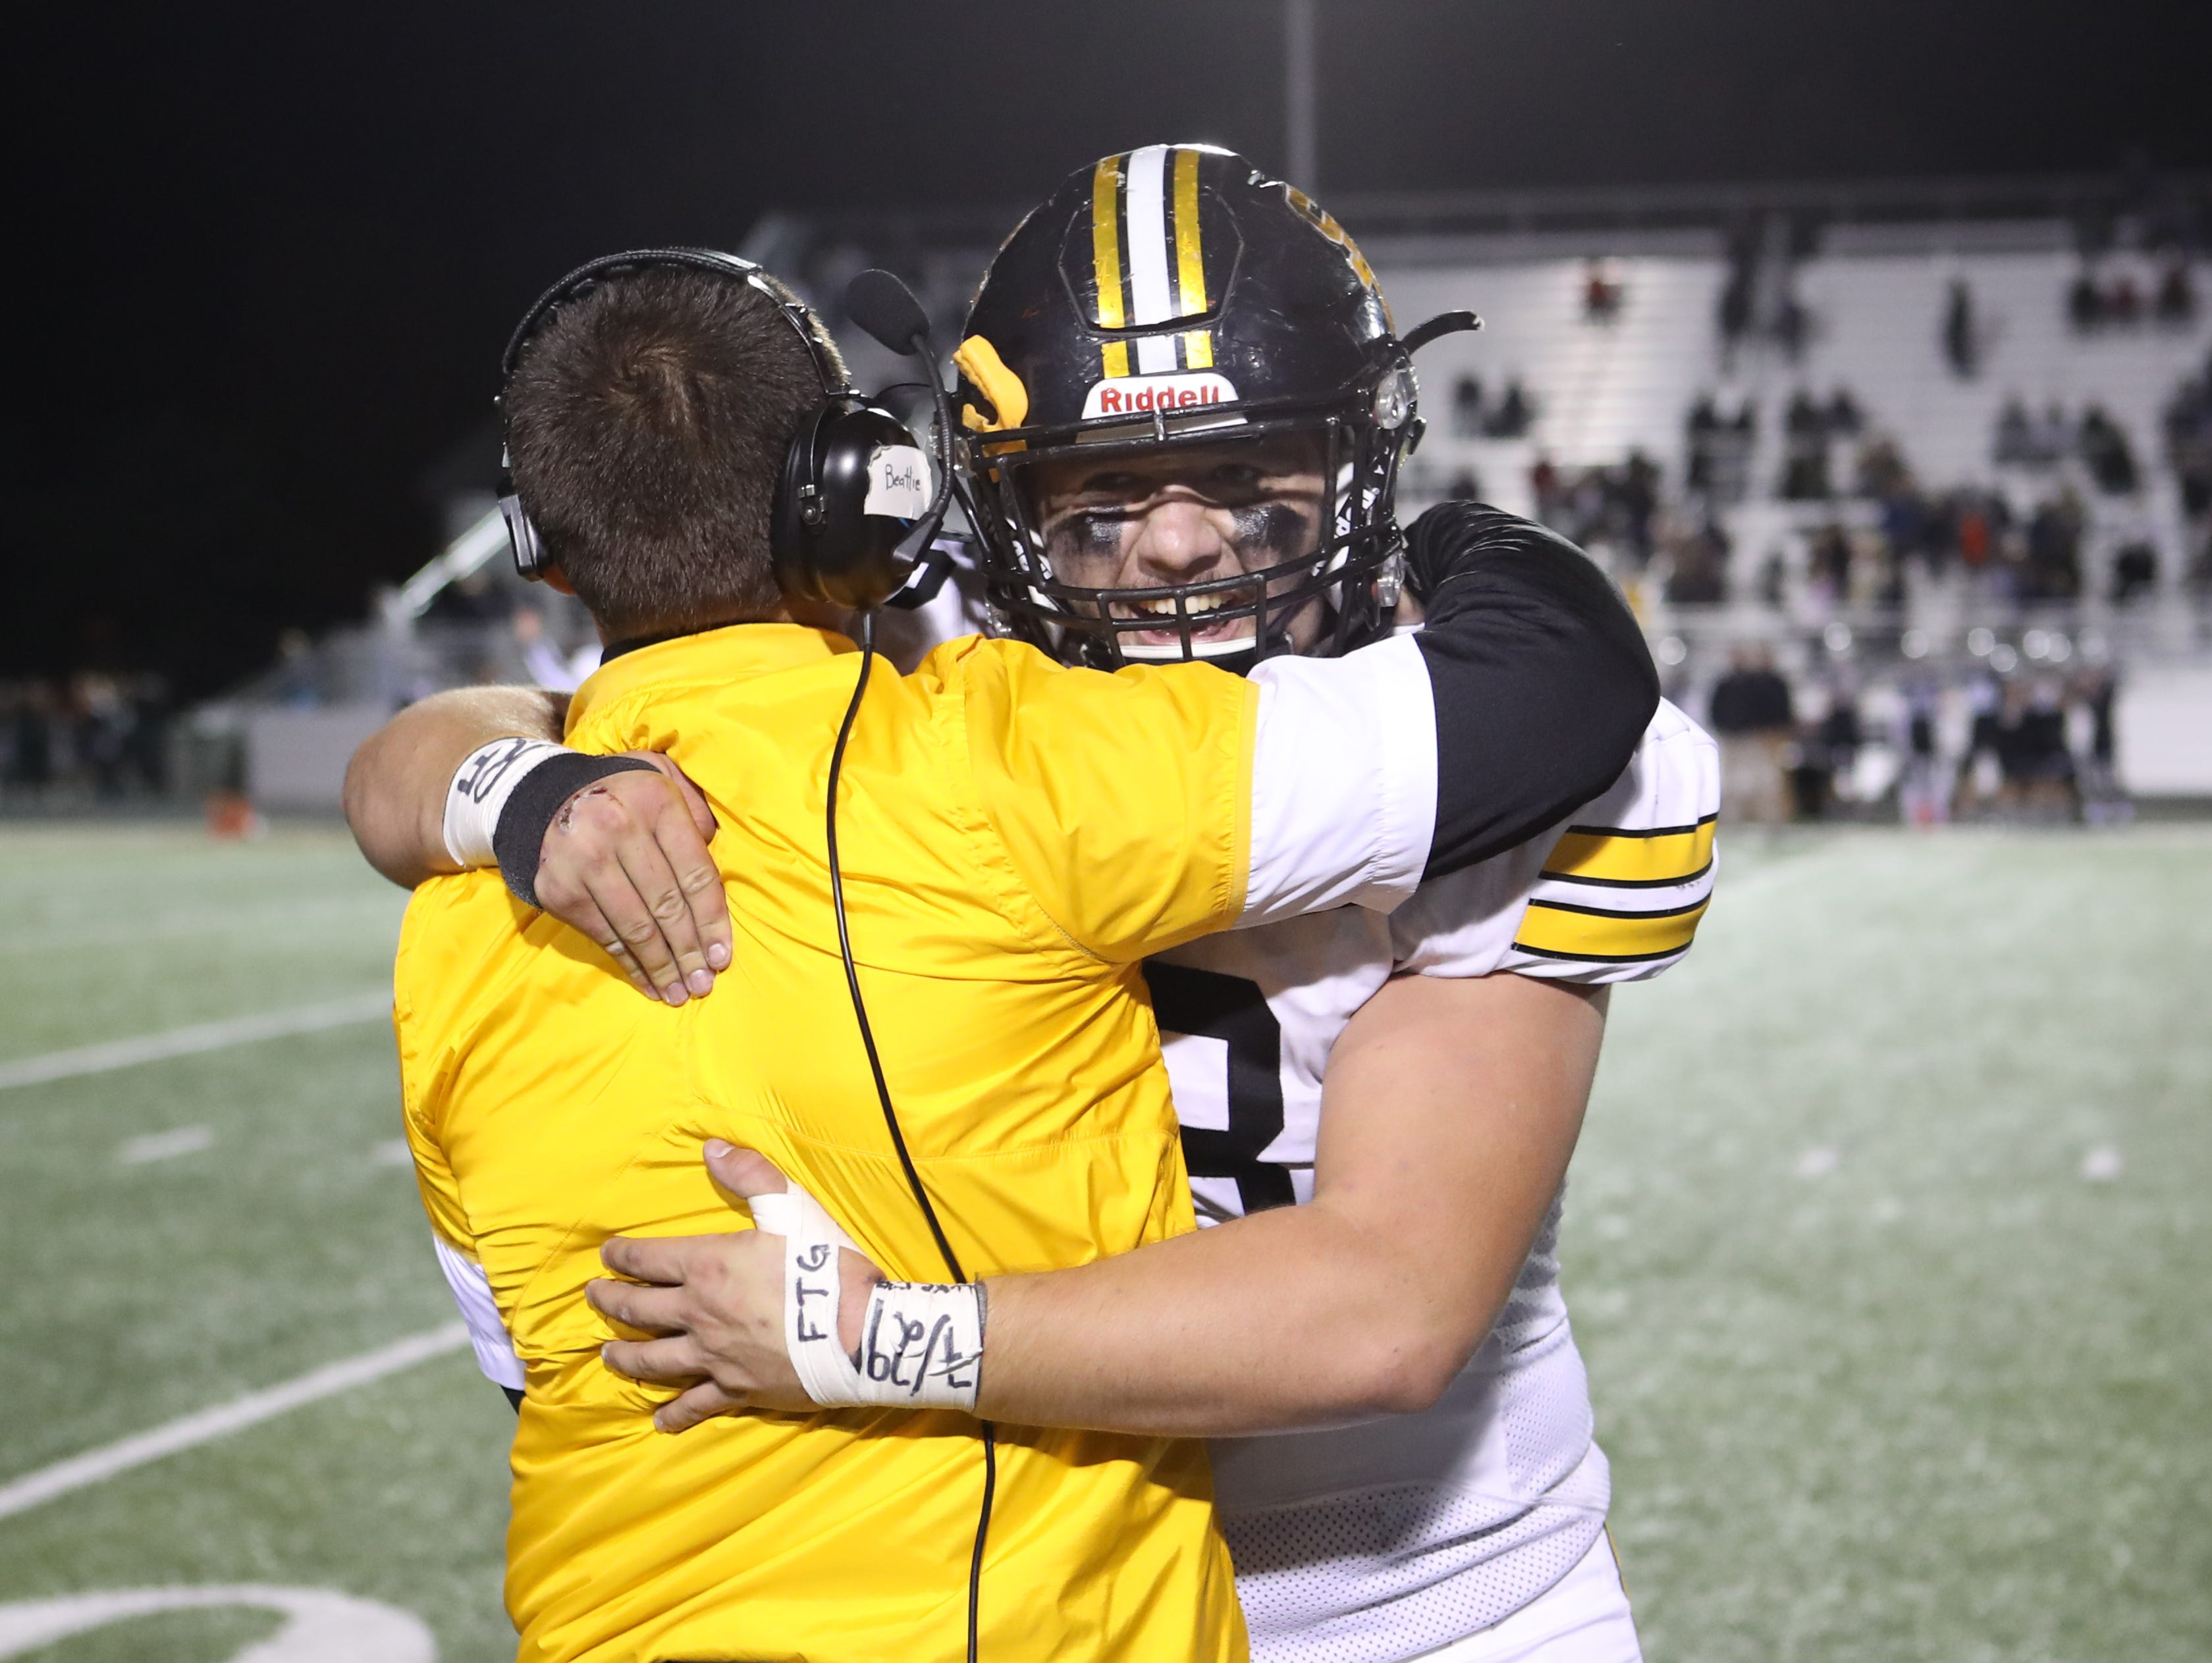 Southeast Polk Rams Bo Ira (48) celebrates the win with Southeast Coach Assistant Coach Luke VanderSanden against the Ankeny Centennial Jaguars at Ankeny football stadium . Mandatory Credit: Reese Strickland-for the register